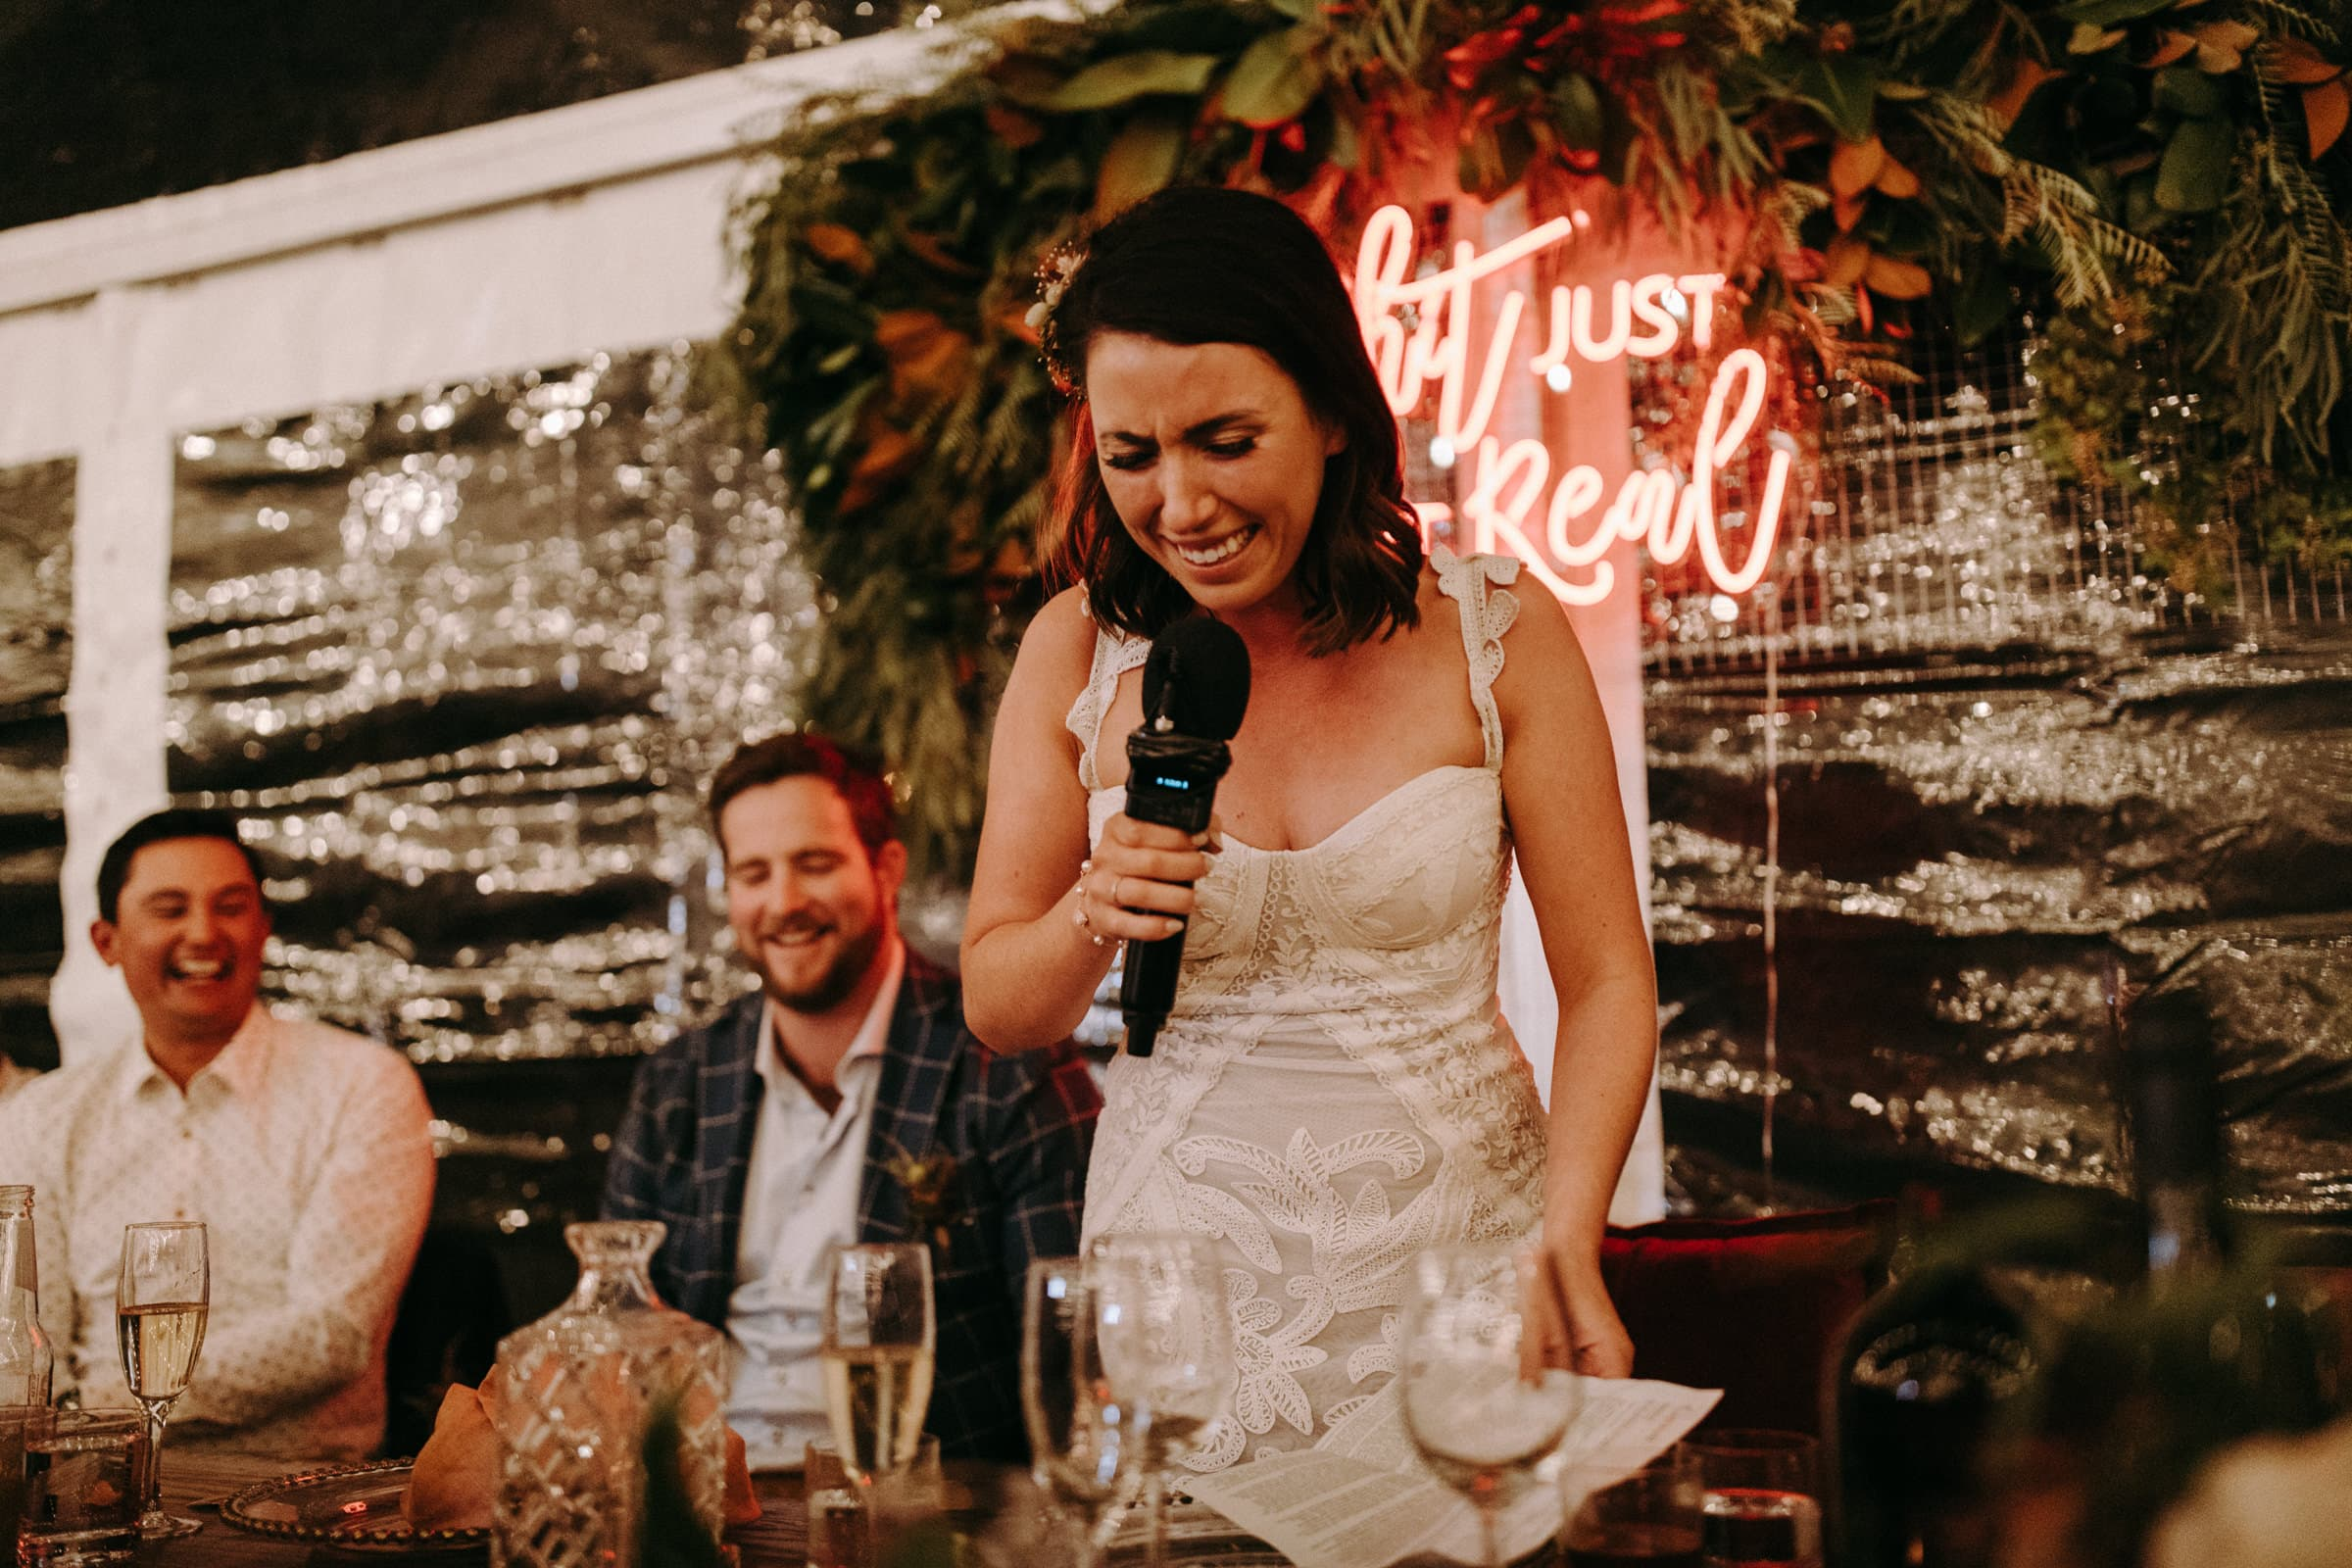 A bride is standing and talking into a microphone and her groom is sitting at the wedding table.